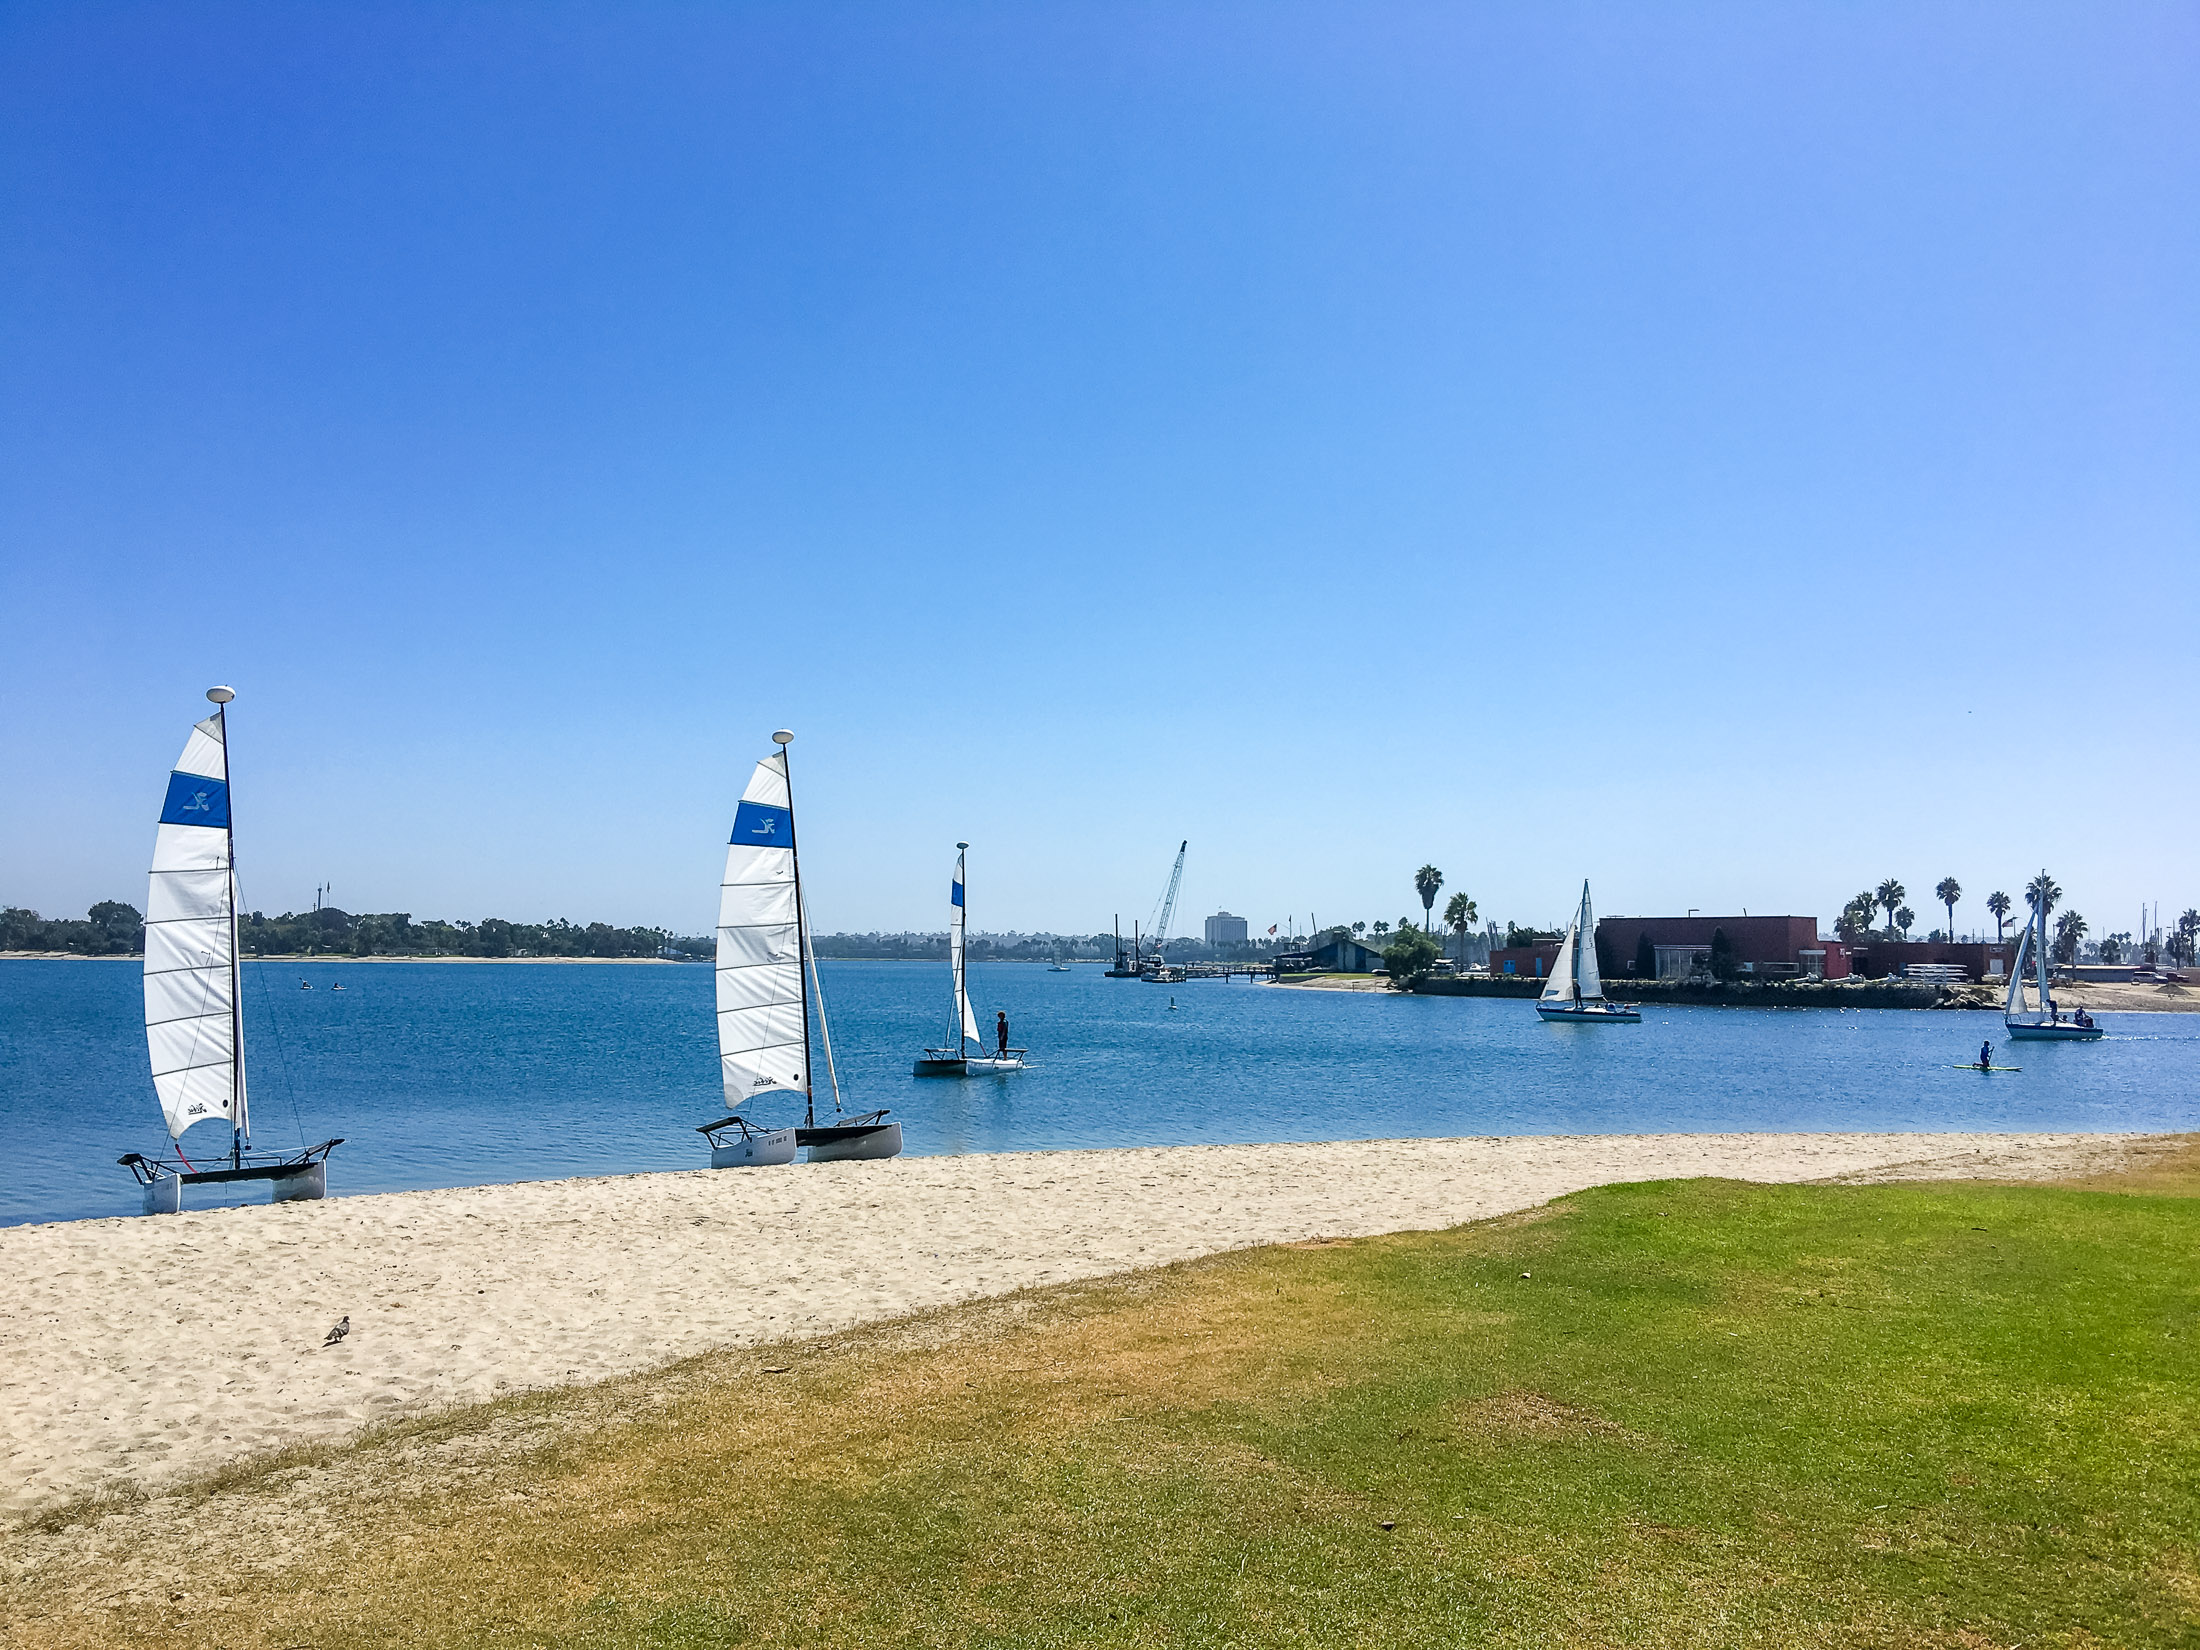 Things to do in Mission Bay San Diego: Learn to sail a catamaran